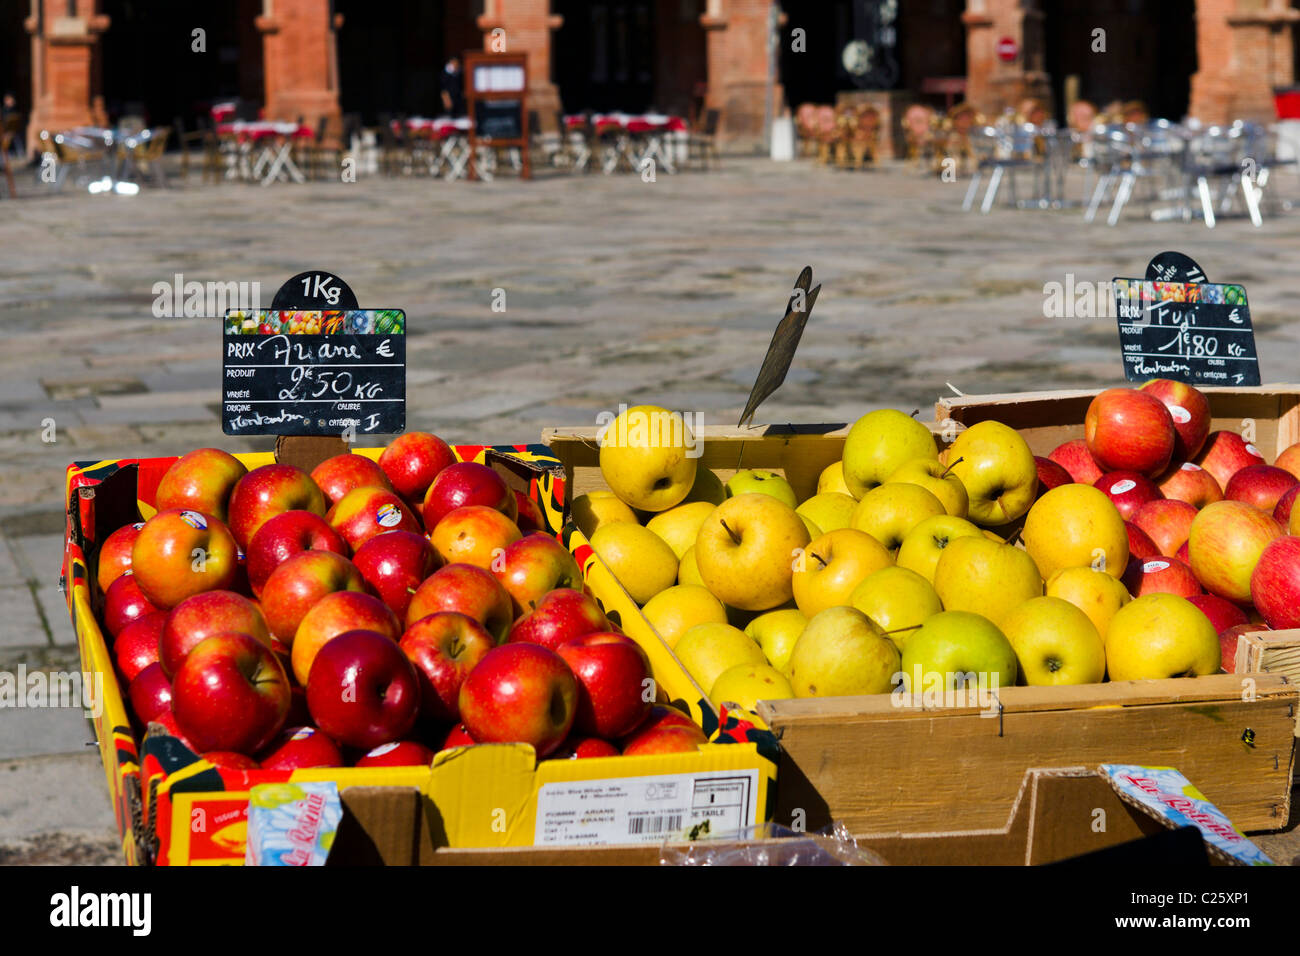 Apples on a market stall in the Place Nationale, Montauban, The Lot, France - Stock Image